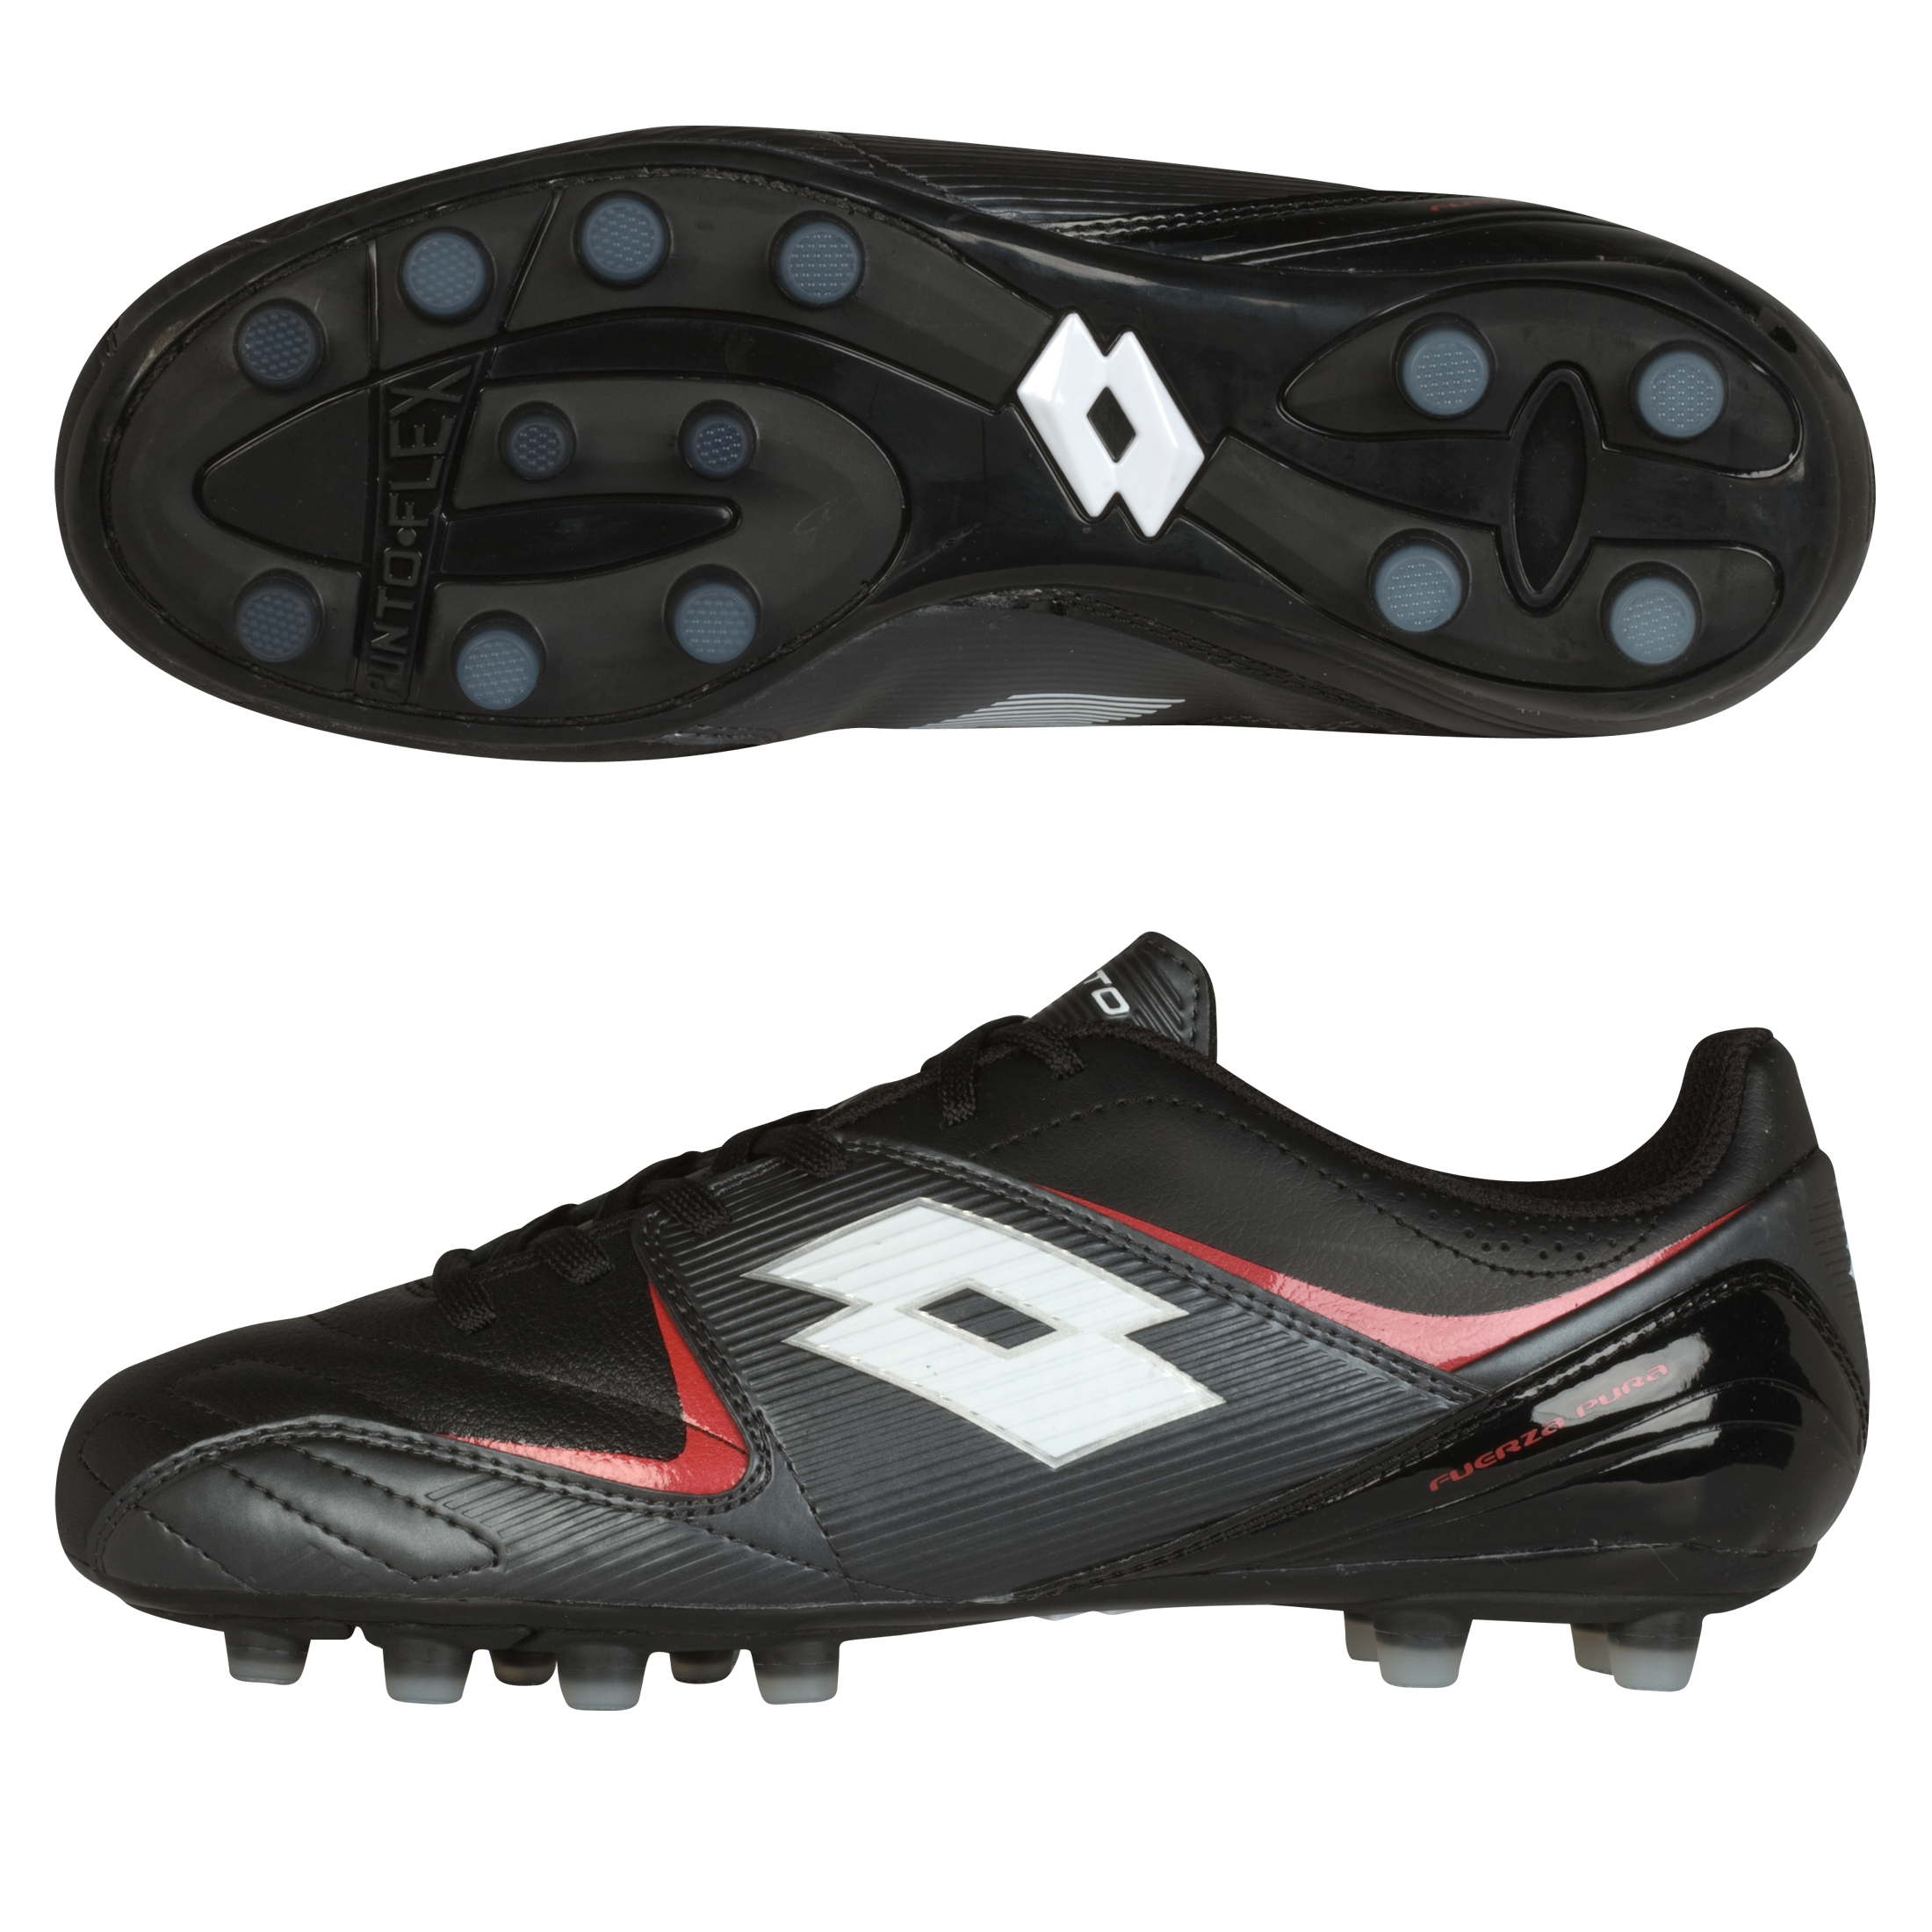 Lotto Fuerzapura II 300 Firm Ground Football Boots - Black/Graphite - Kids